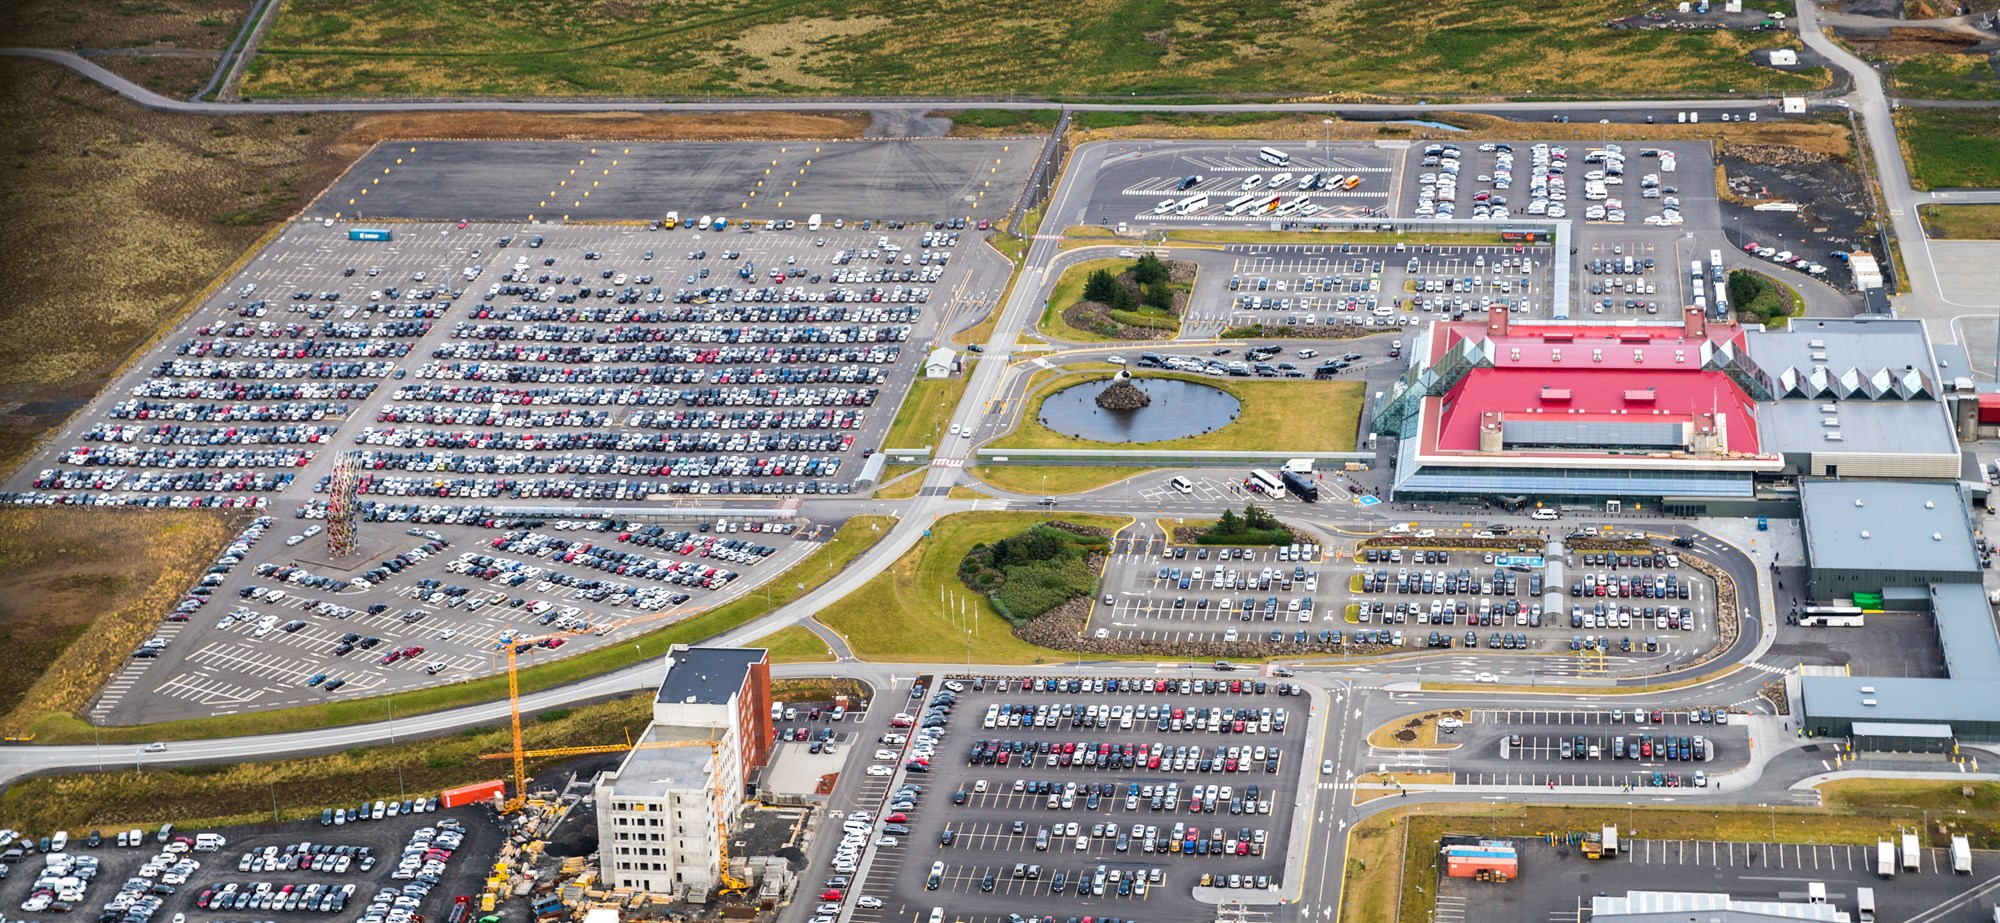 NEW TEMPORARY FEE ON OUTER COACH PARKING AT KEFLAVIK AIRPORT